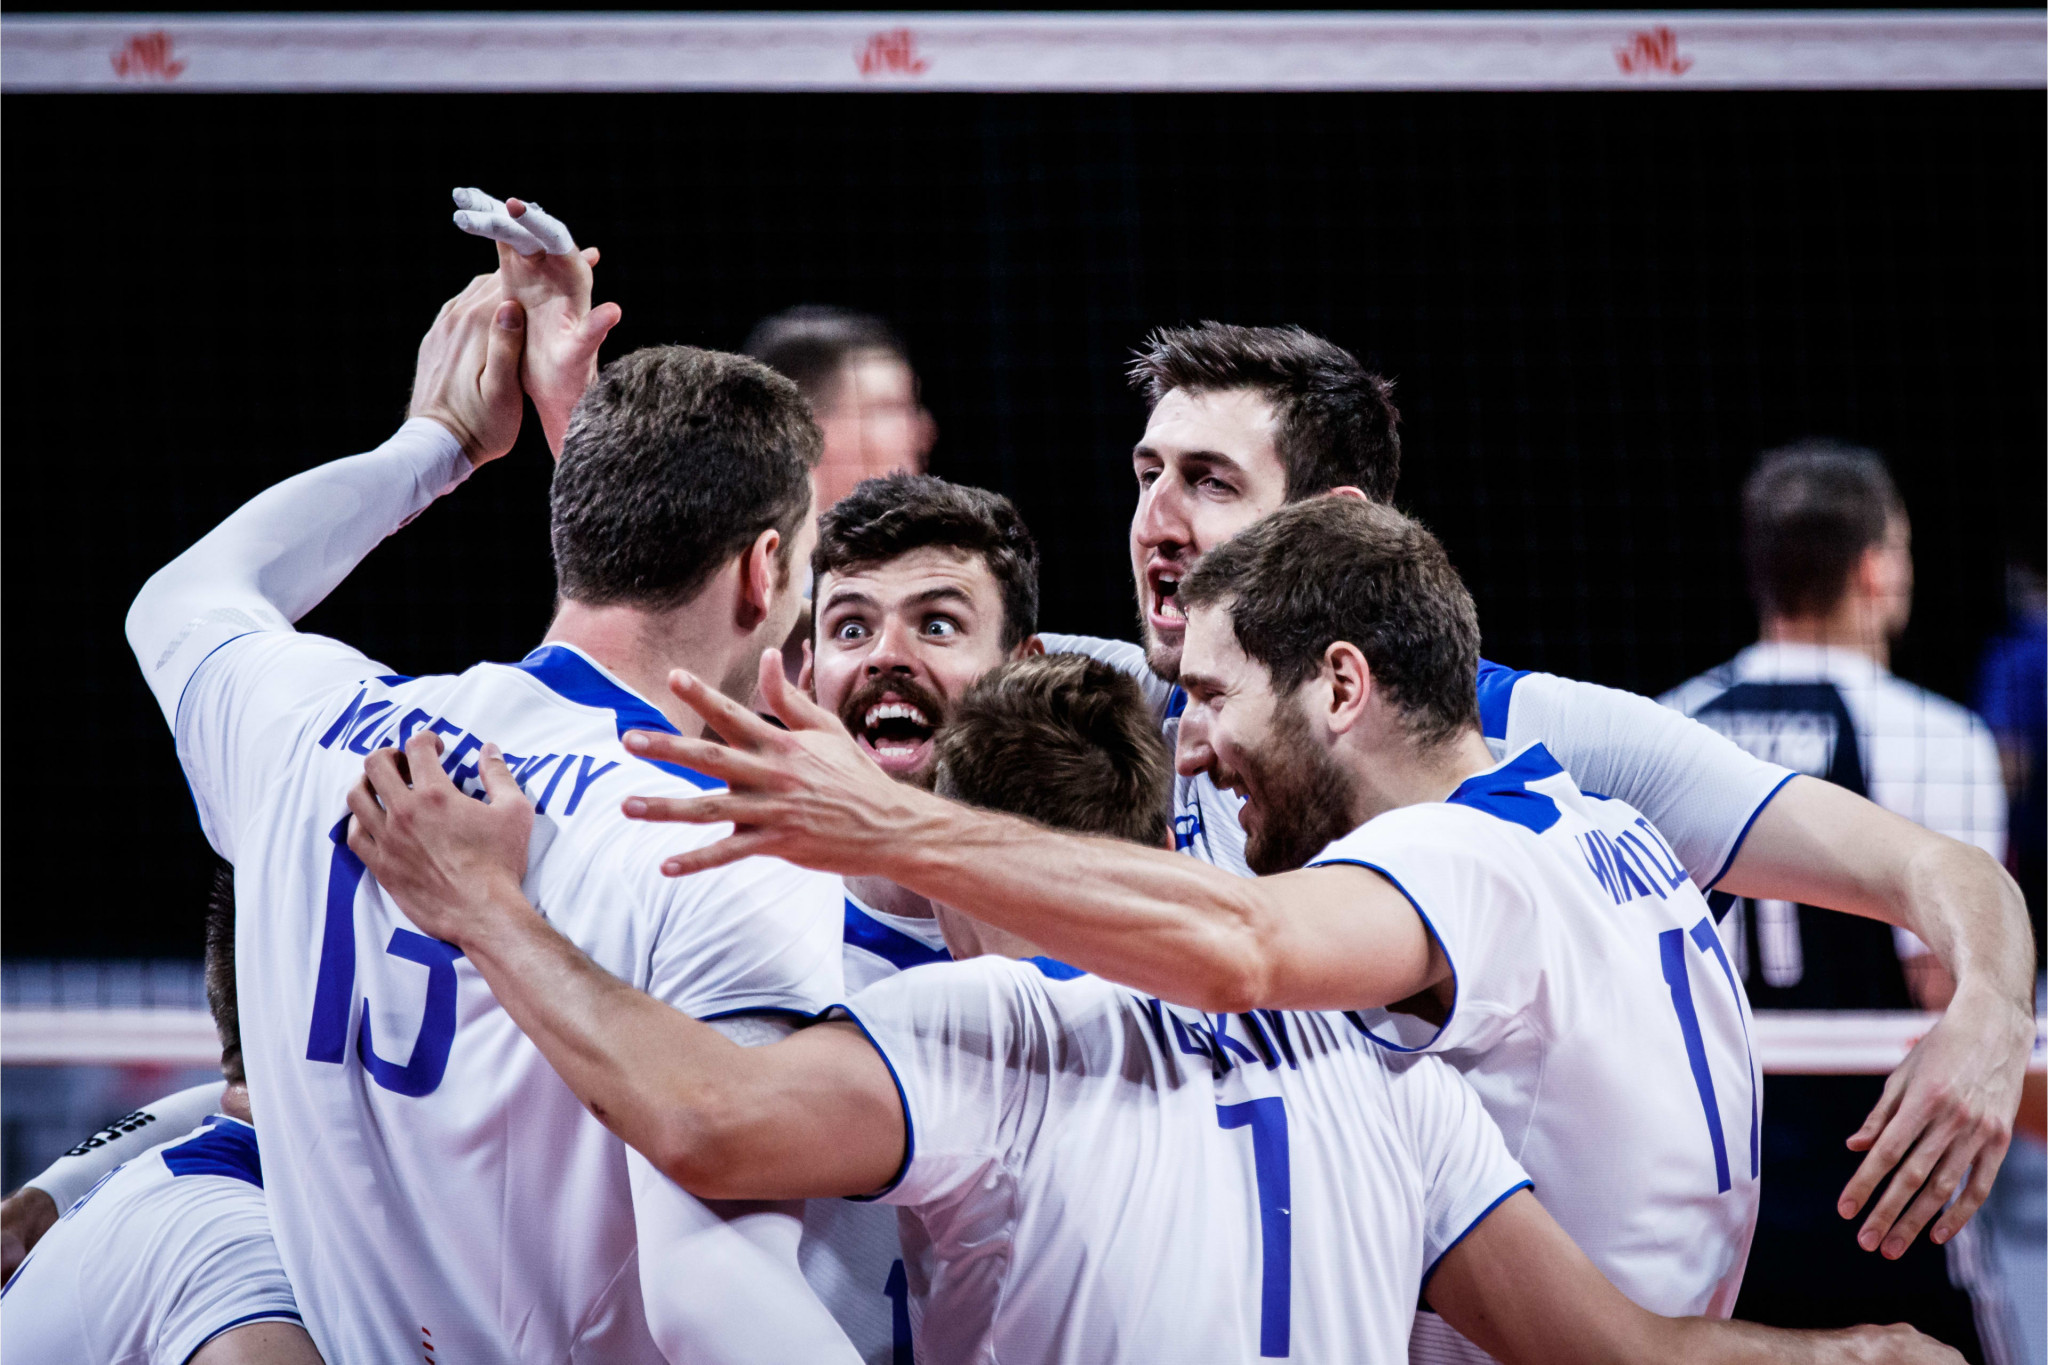 Six countries in the mix for semi-final spots with one day to go of men's Volleyball Nations League preliminary round